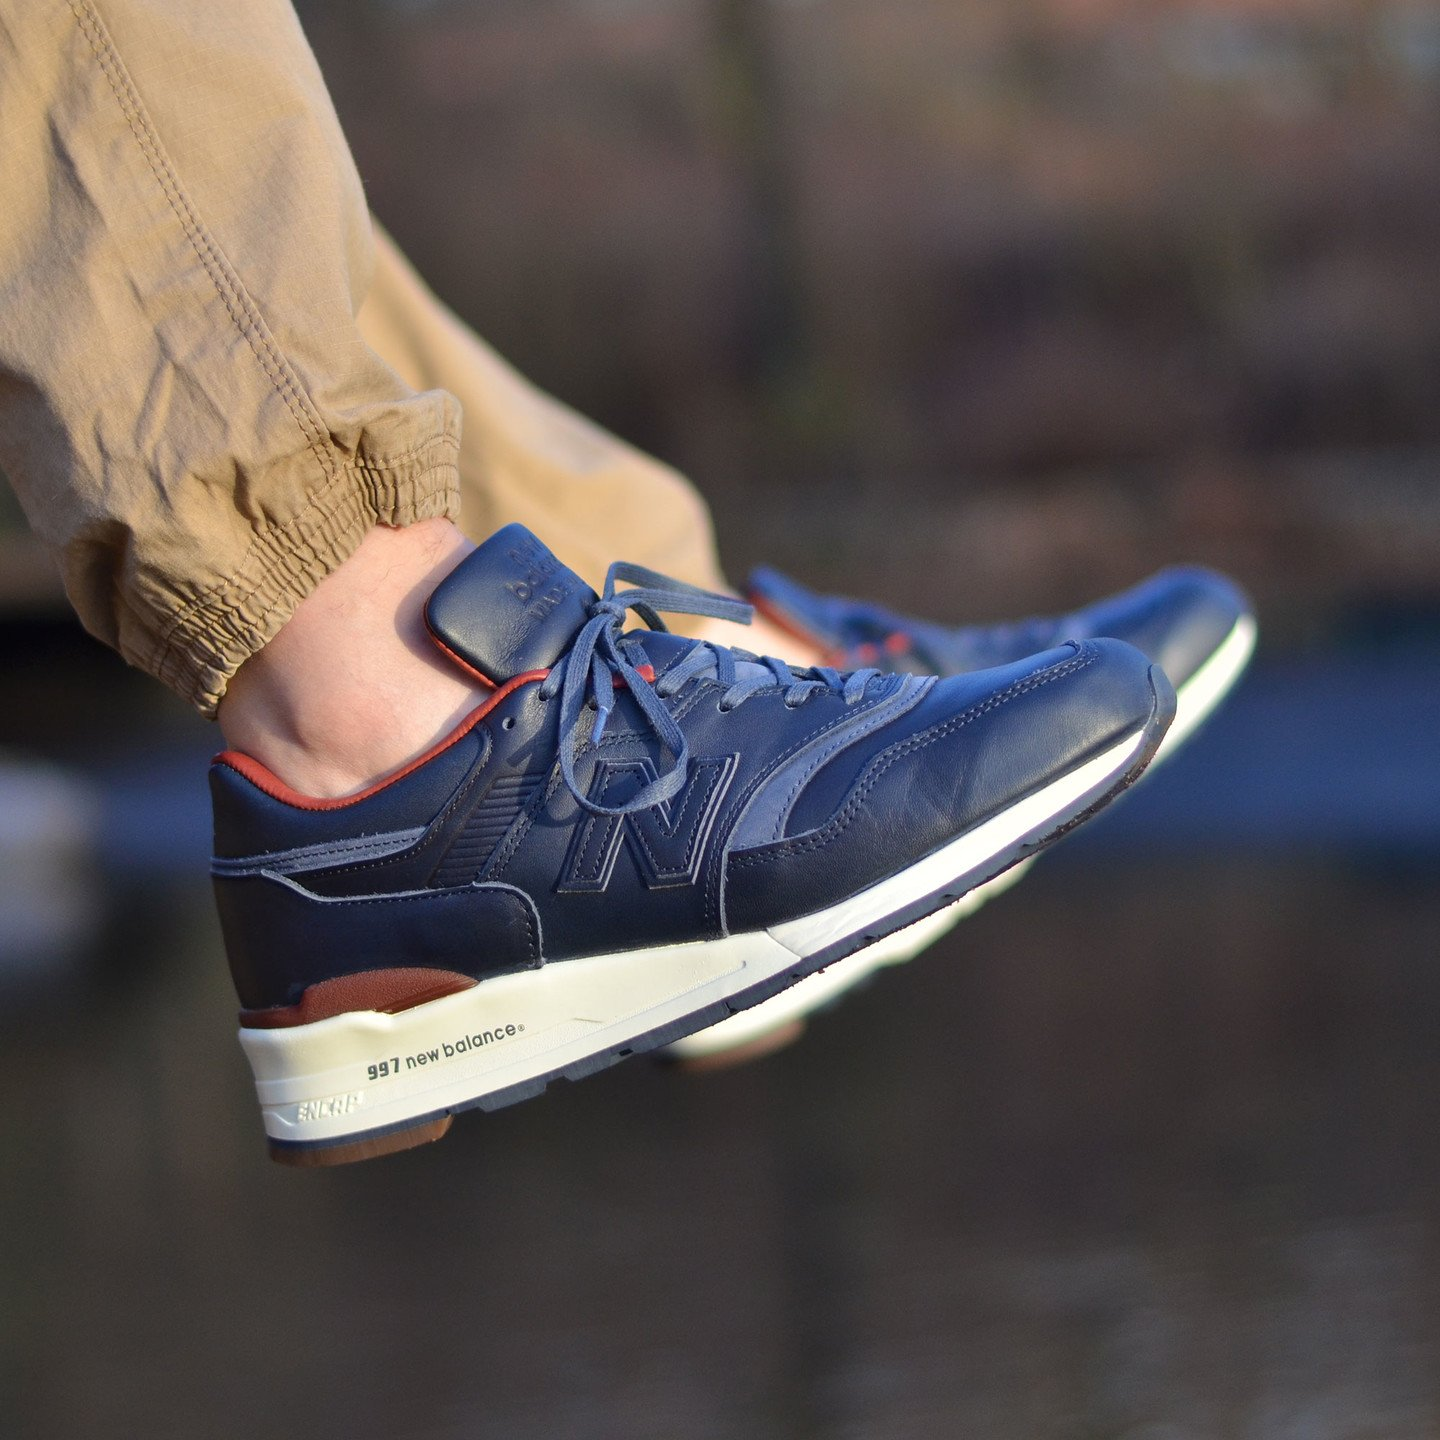 New Balance M997 Made in USA - Horween Leather Dark Blue / Burgundy M997BEXP